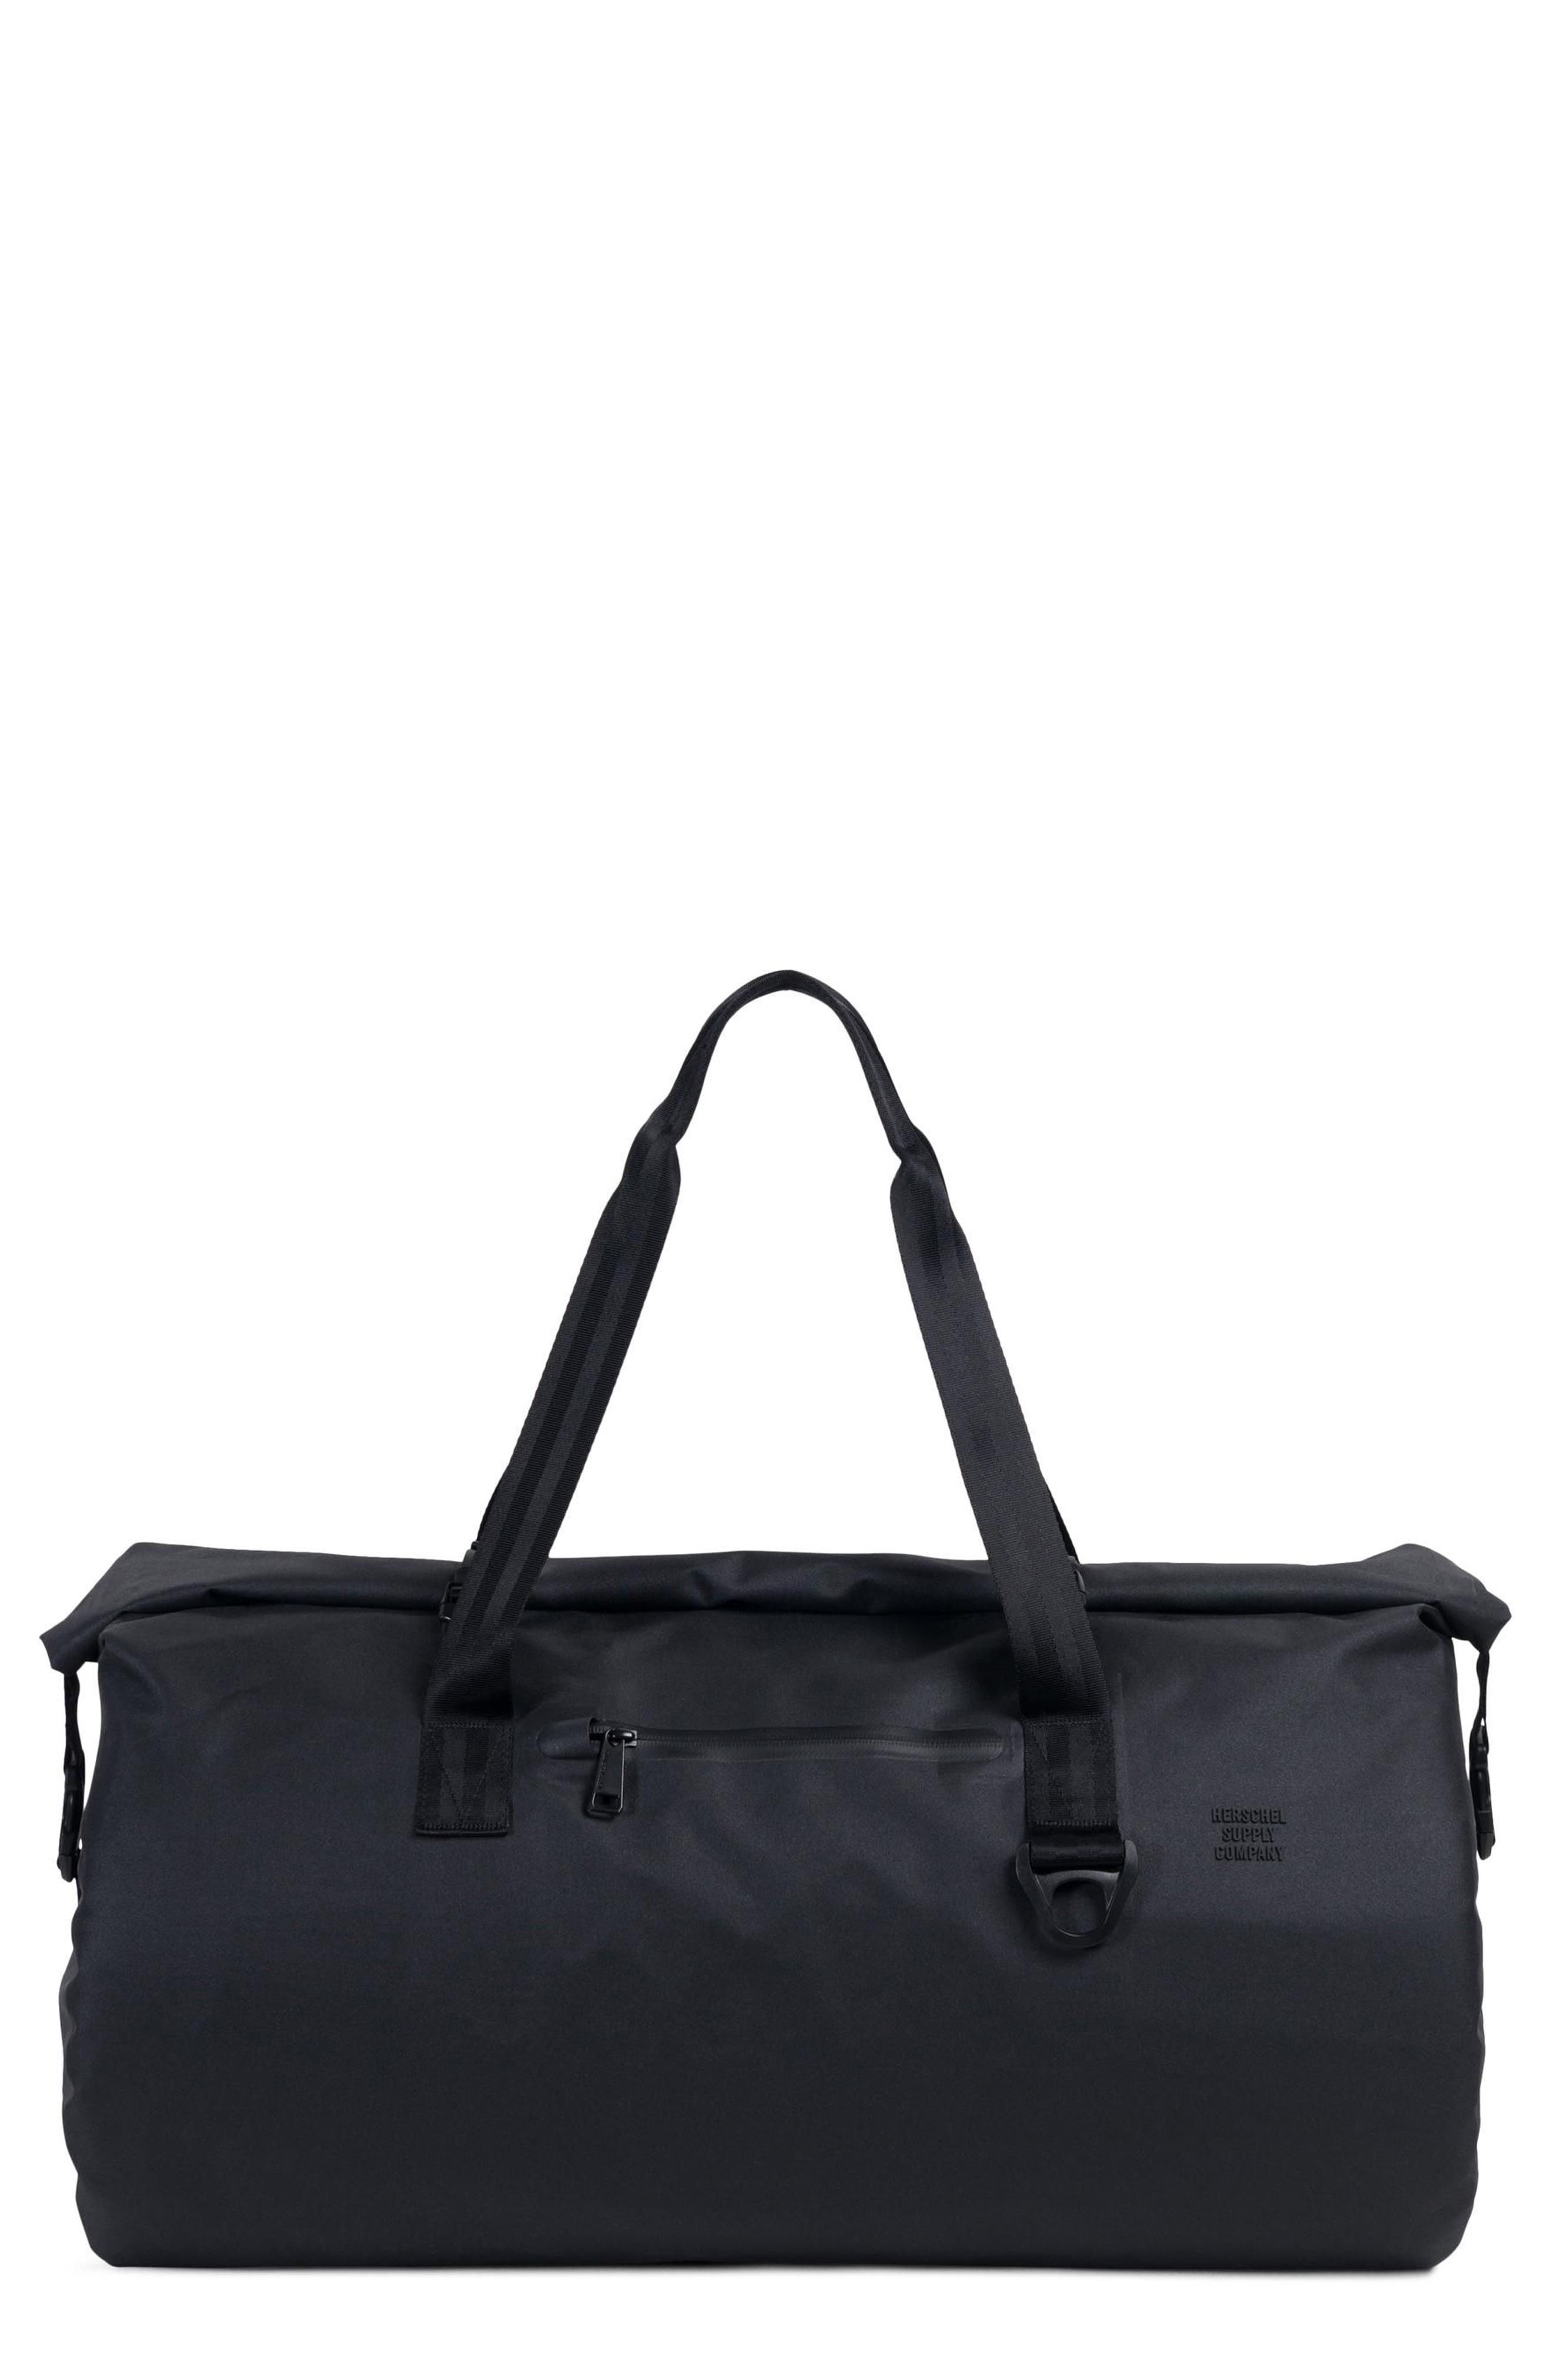 Main Image - Herschel Supply Co. Tarpaulin Coast Studio Duffel Bag